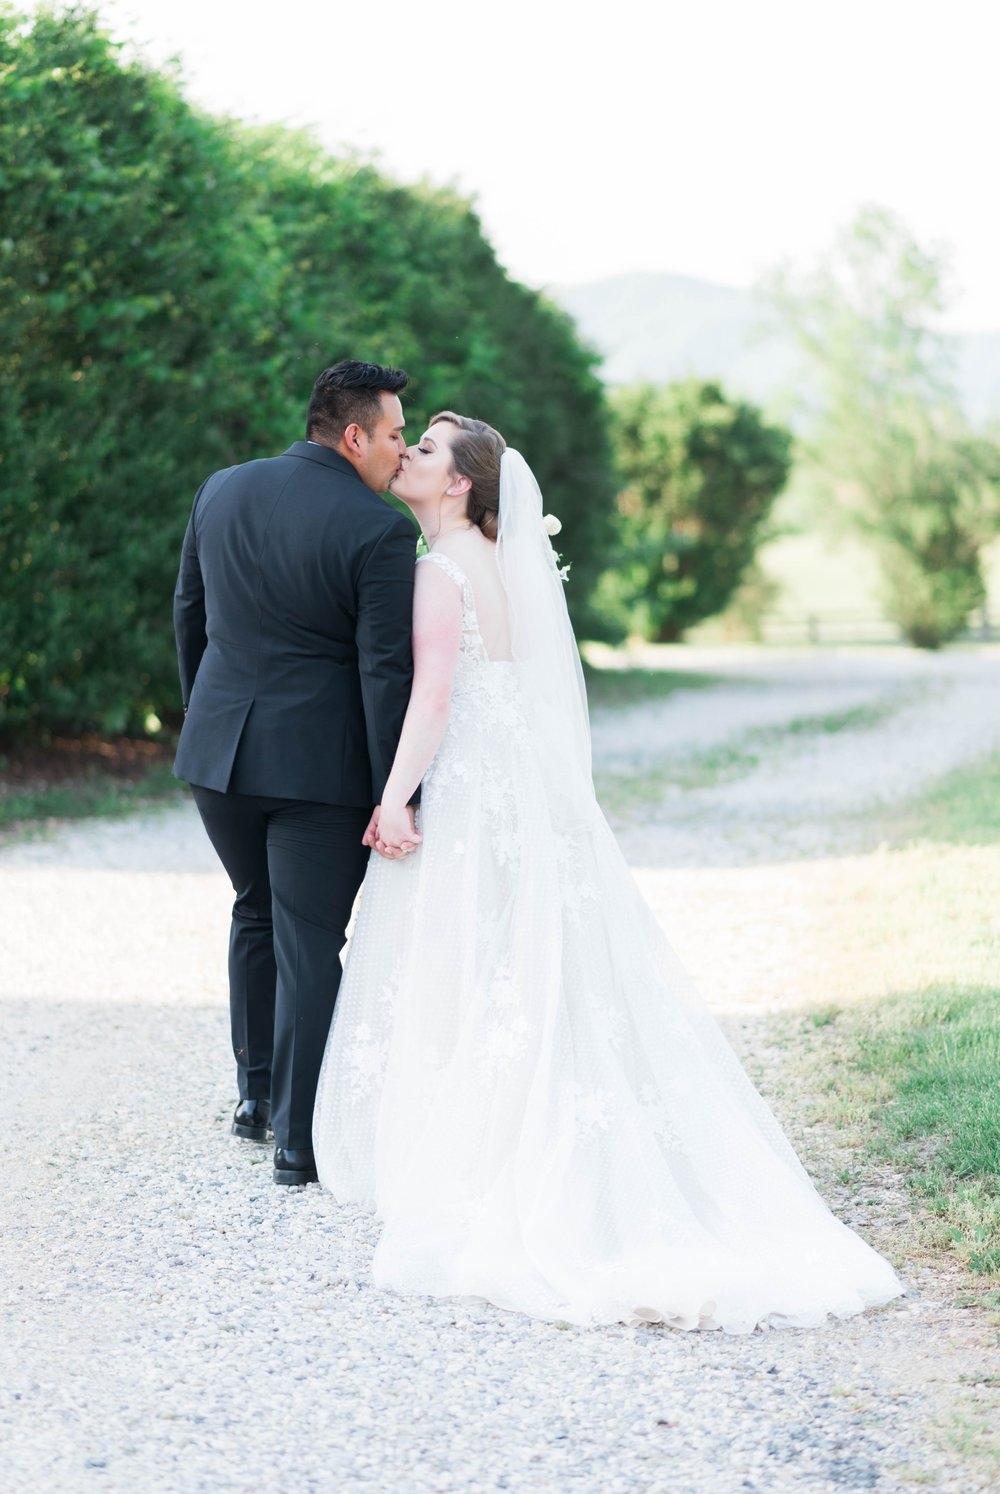 Jillian+Abi_OakridgeEstate_Wedding_VirginiaWeddingPhotographer_SpringWedding 19.jpg